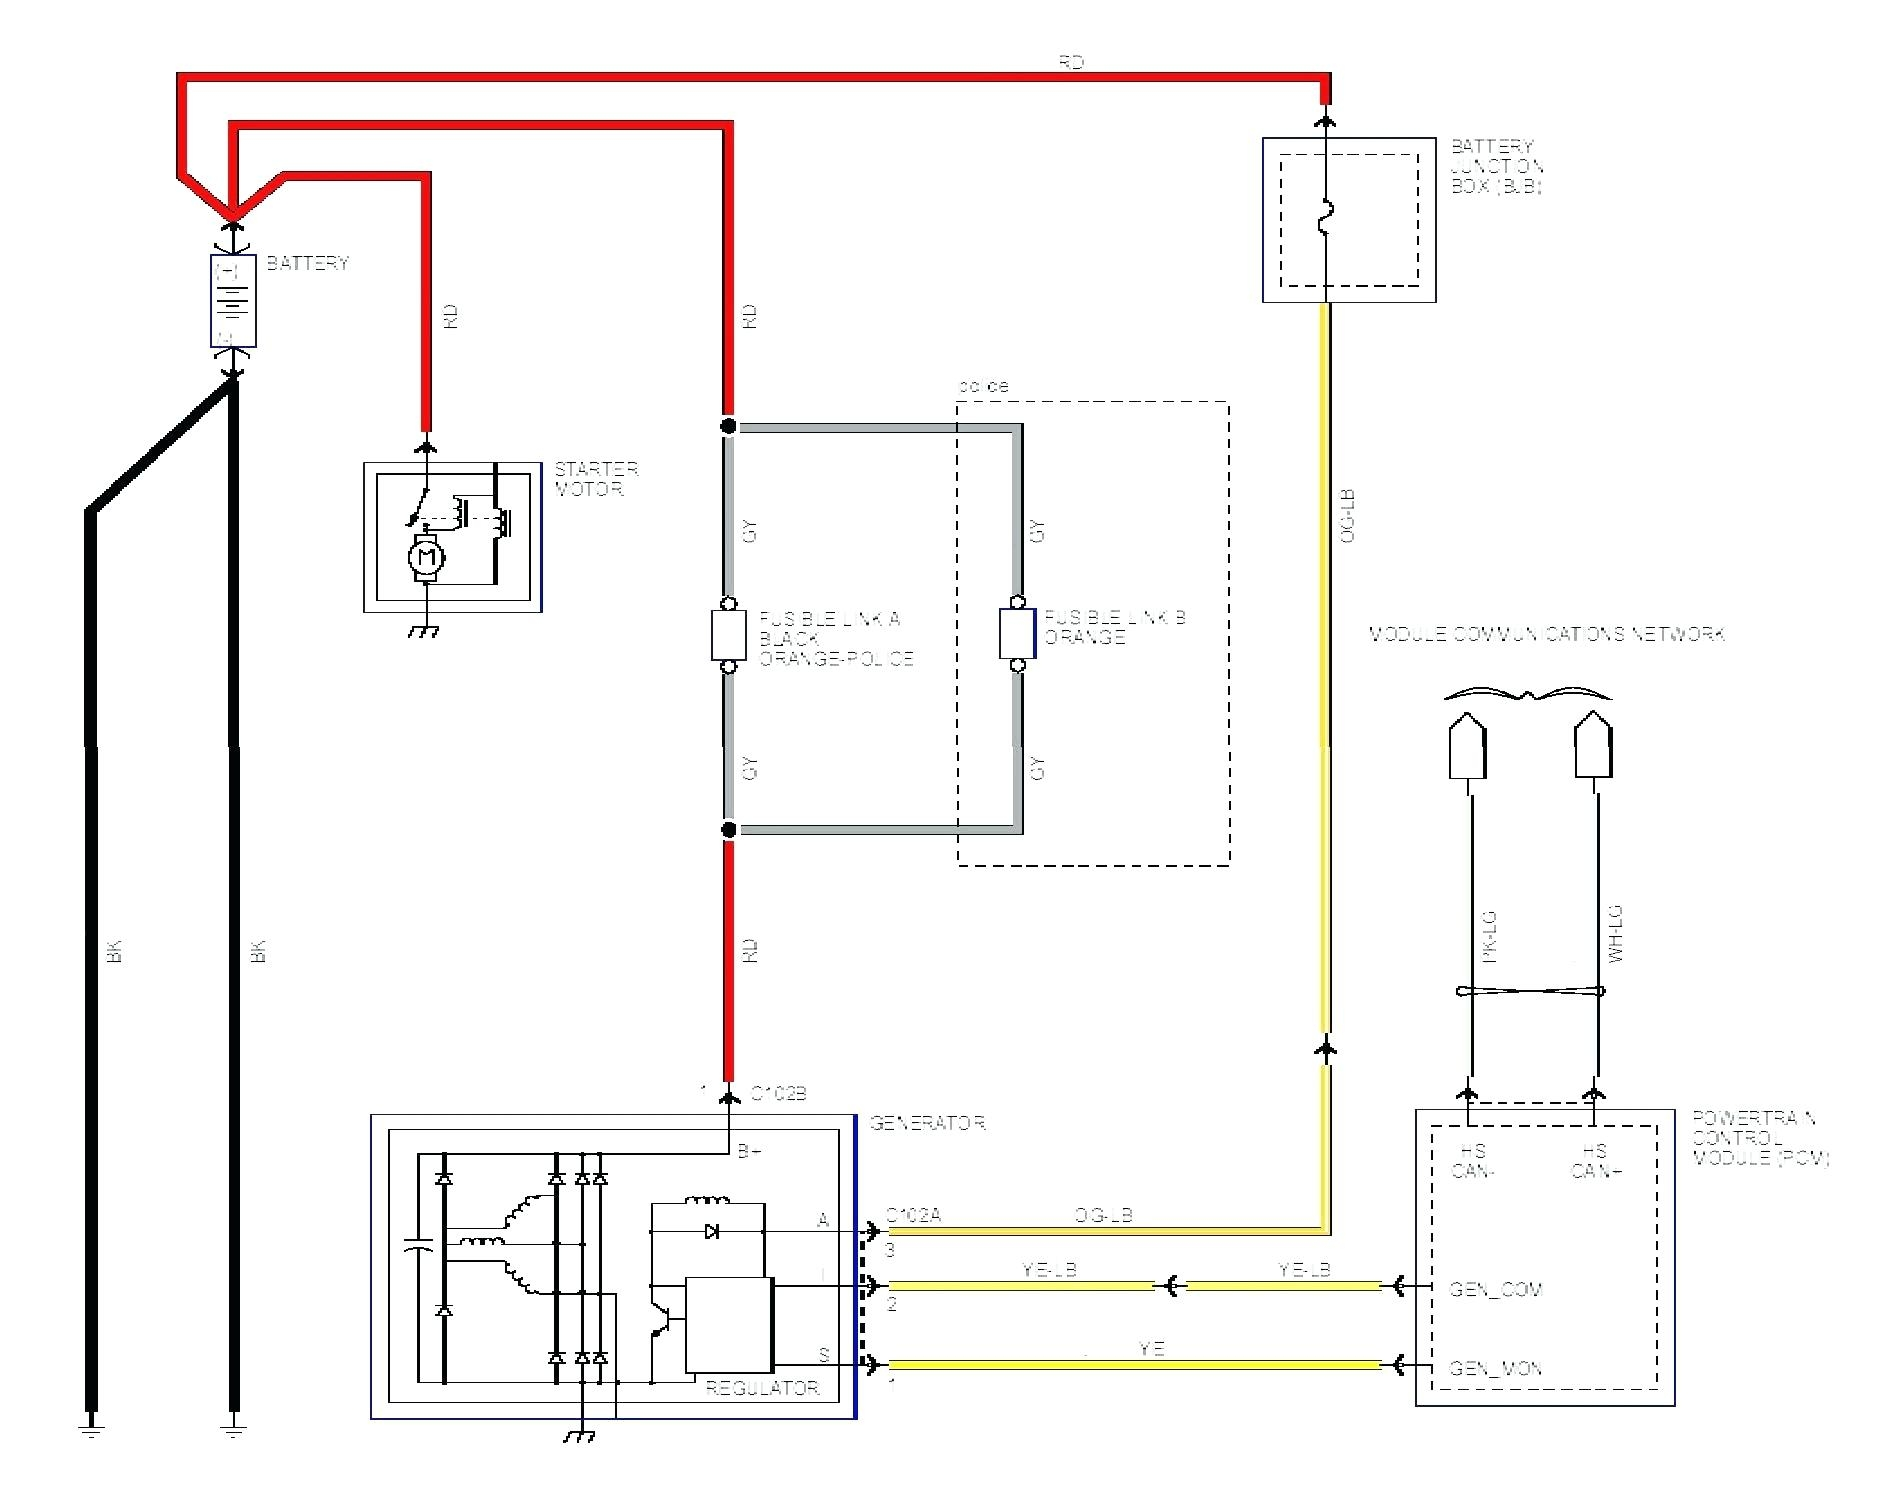 smoke detector wire diagram ag 3037  simplex duct detector wiring diagram download diagram  simplex duct detector wiring diagram